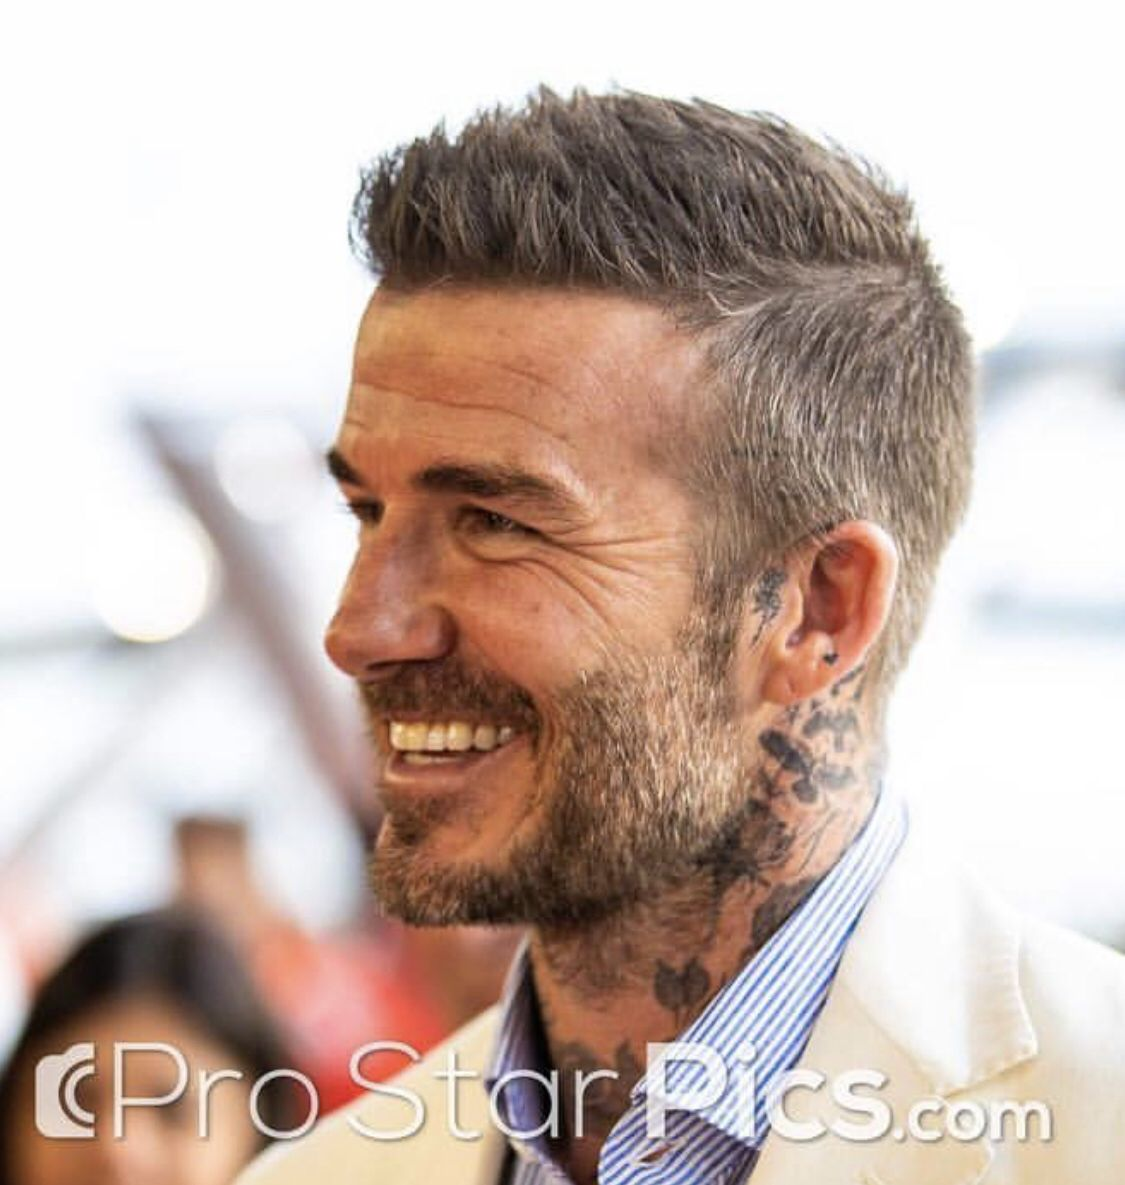 Pin By David Beckham On David Beckham Beckham Haircut David Beckham Hairstyle David Beckham Haircut